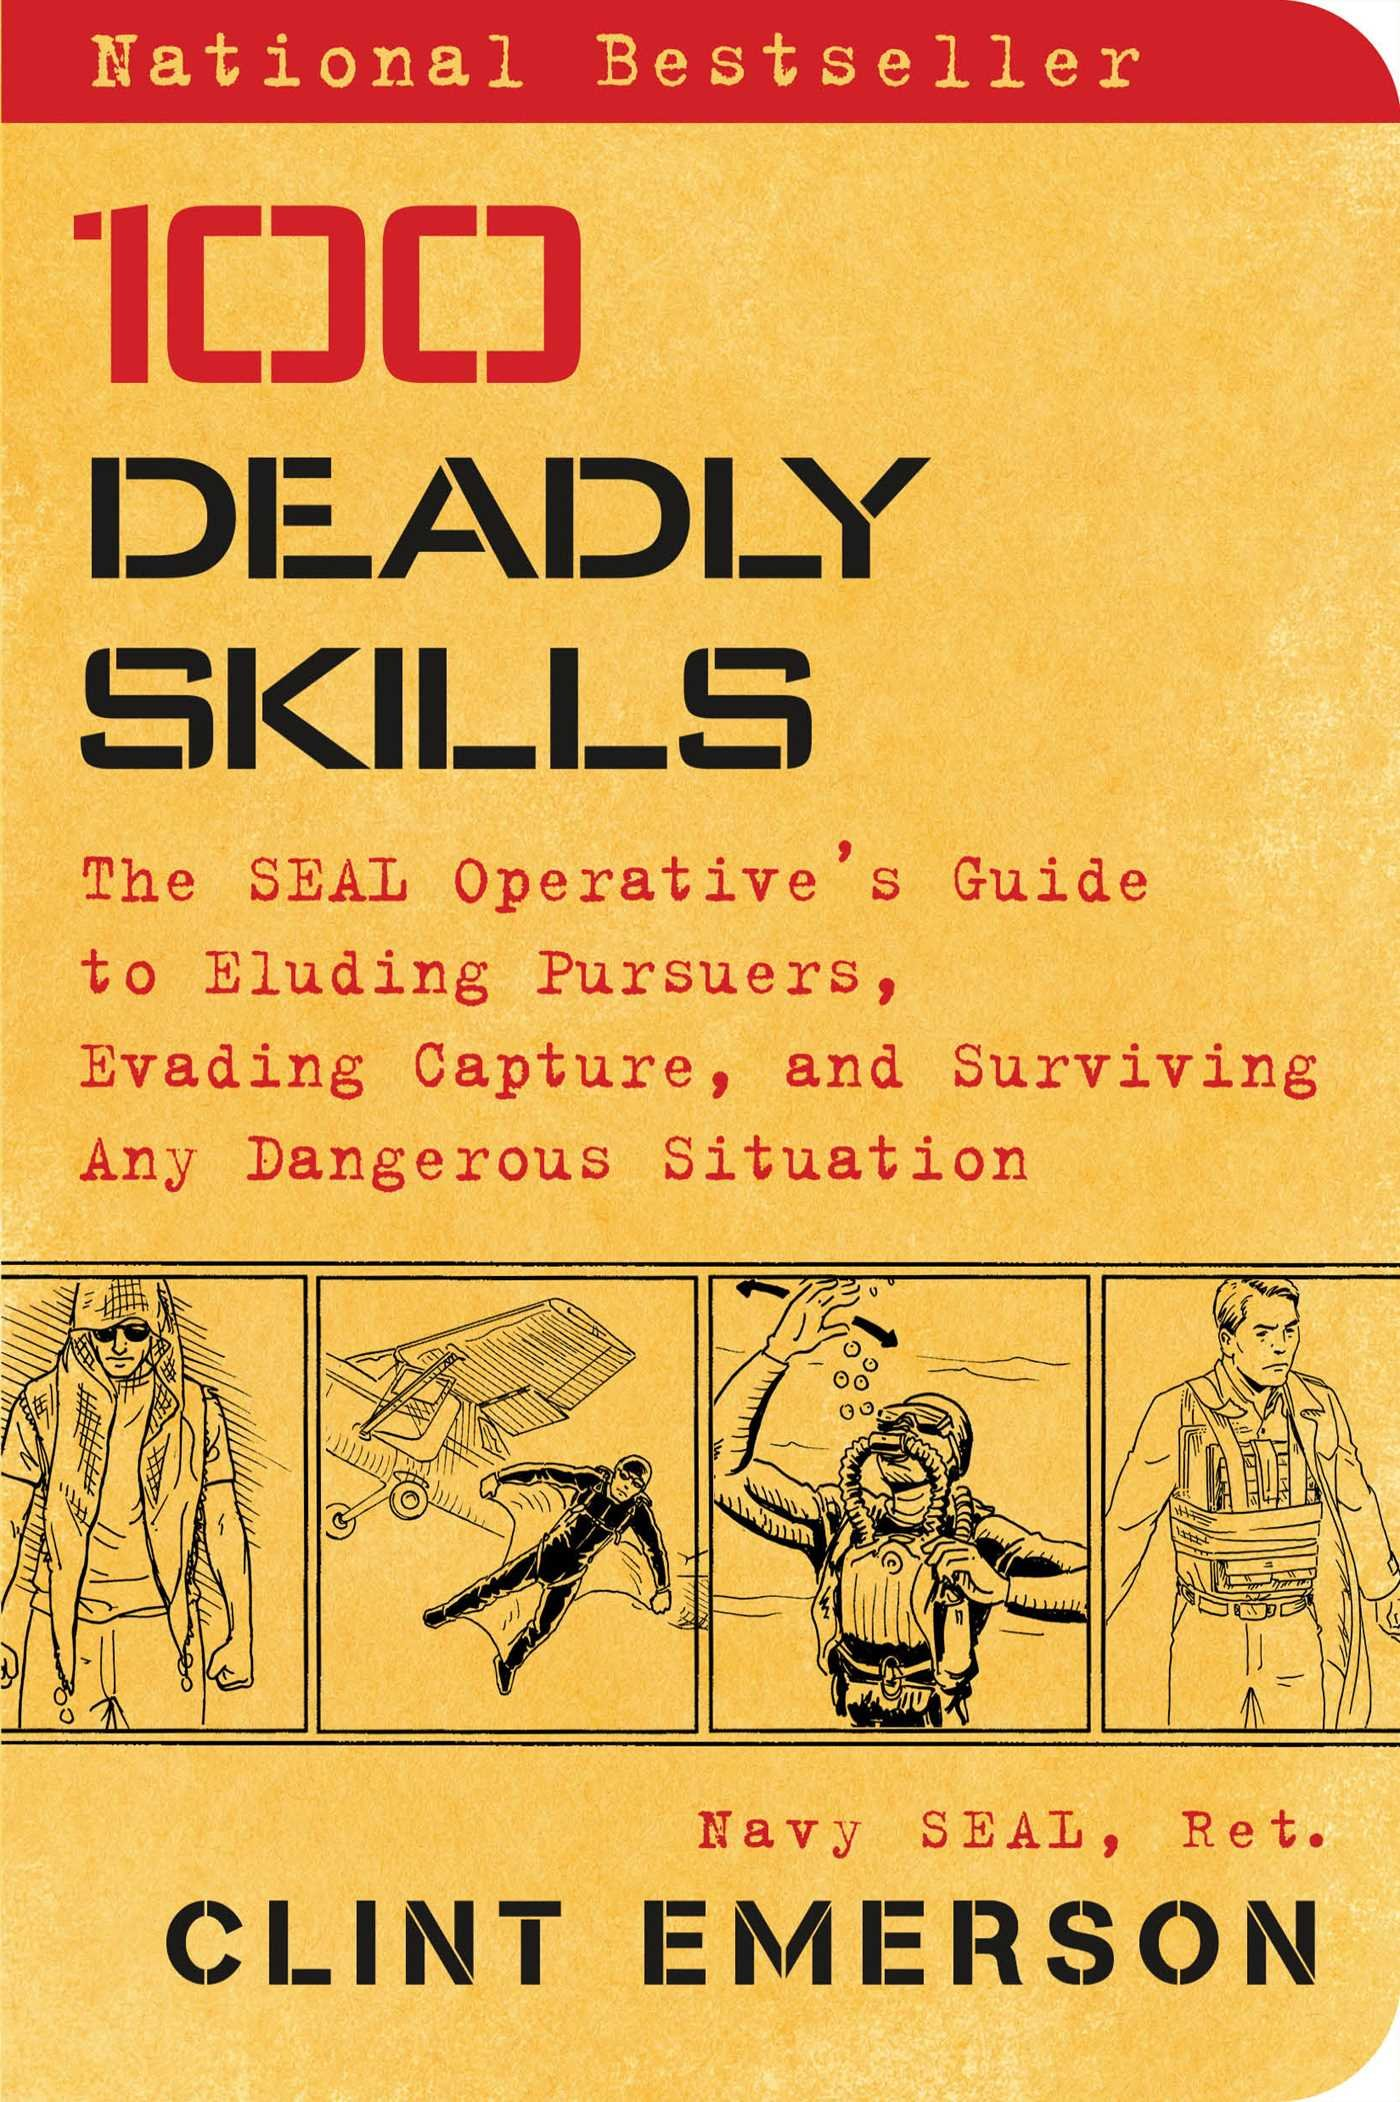 100 Deadly Skills: The SEAL Operative's Guide to Eluding Pursuers, Evading Capture, and Surviving Any Dangerous Situation by Atria Books